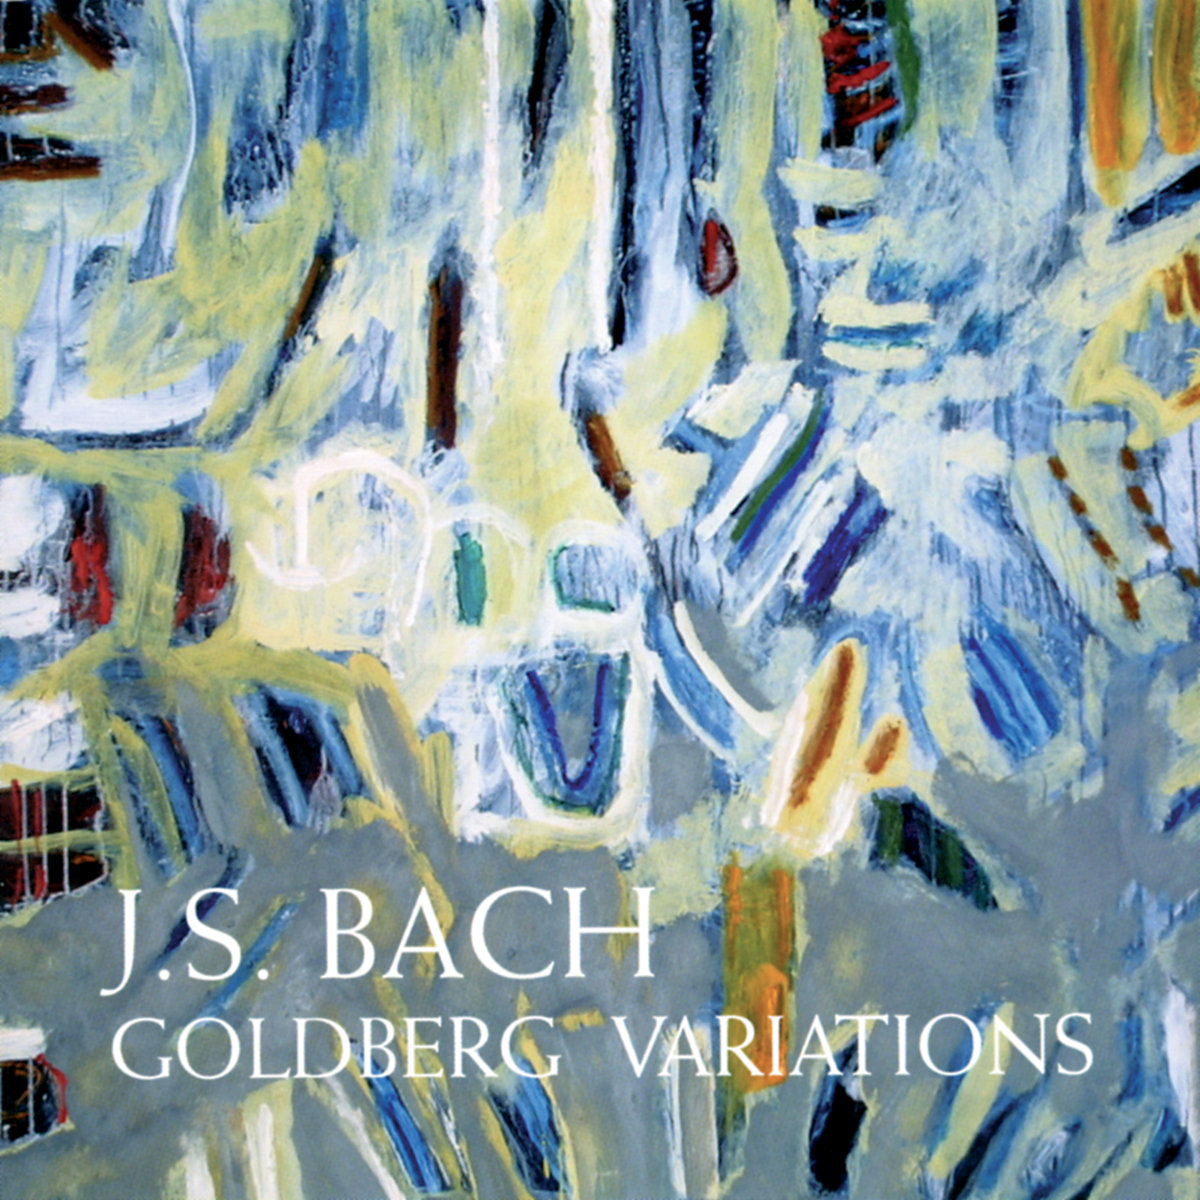 J. S. Bach: Goldberg Variations